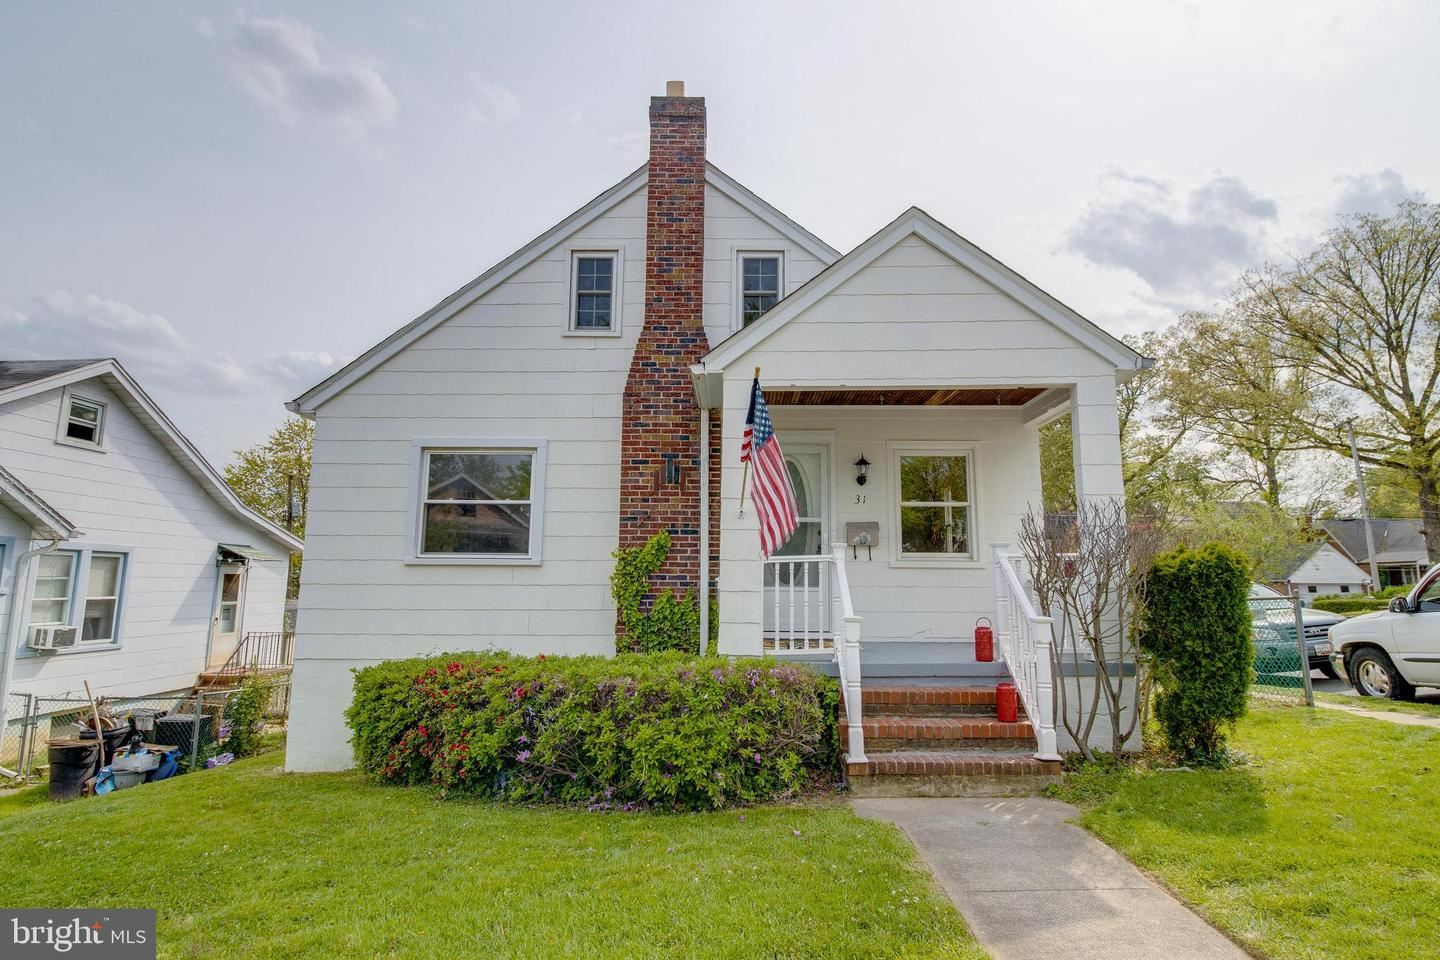 31 W ELM AVE, Baltimore, MD 21206 - MLS#: MDBC527816